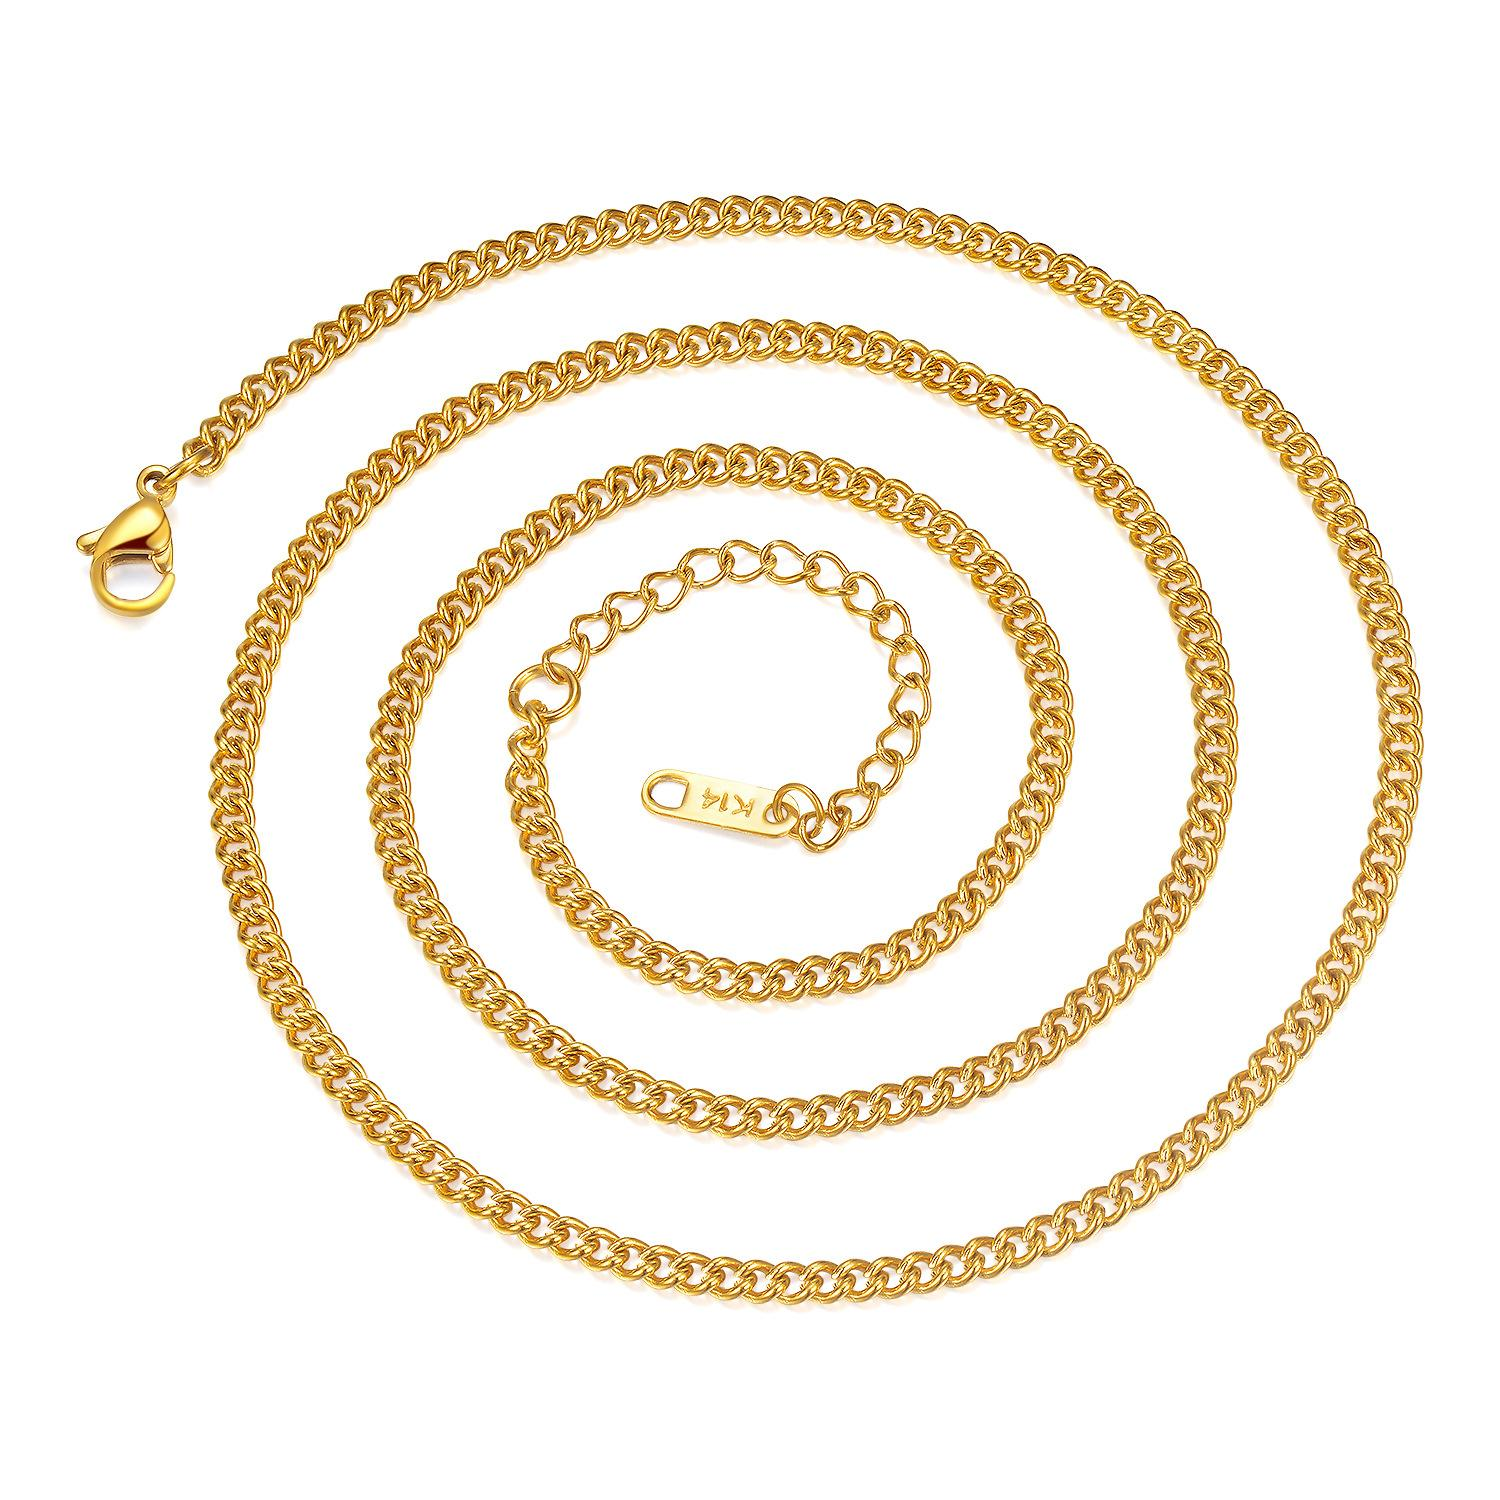 bangalore supplier manufacturer gold chains yellow